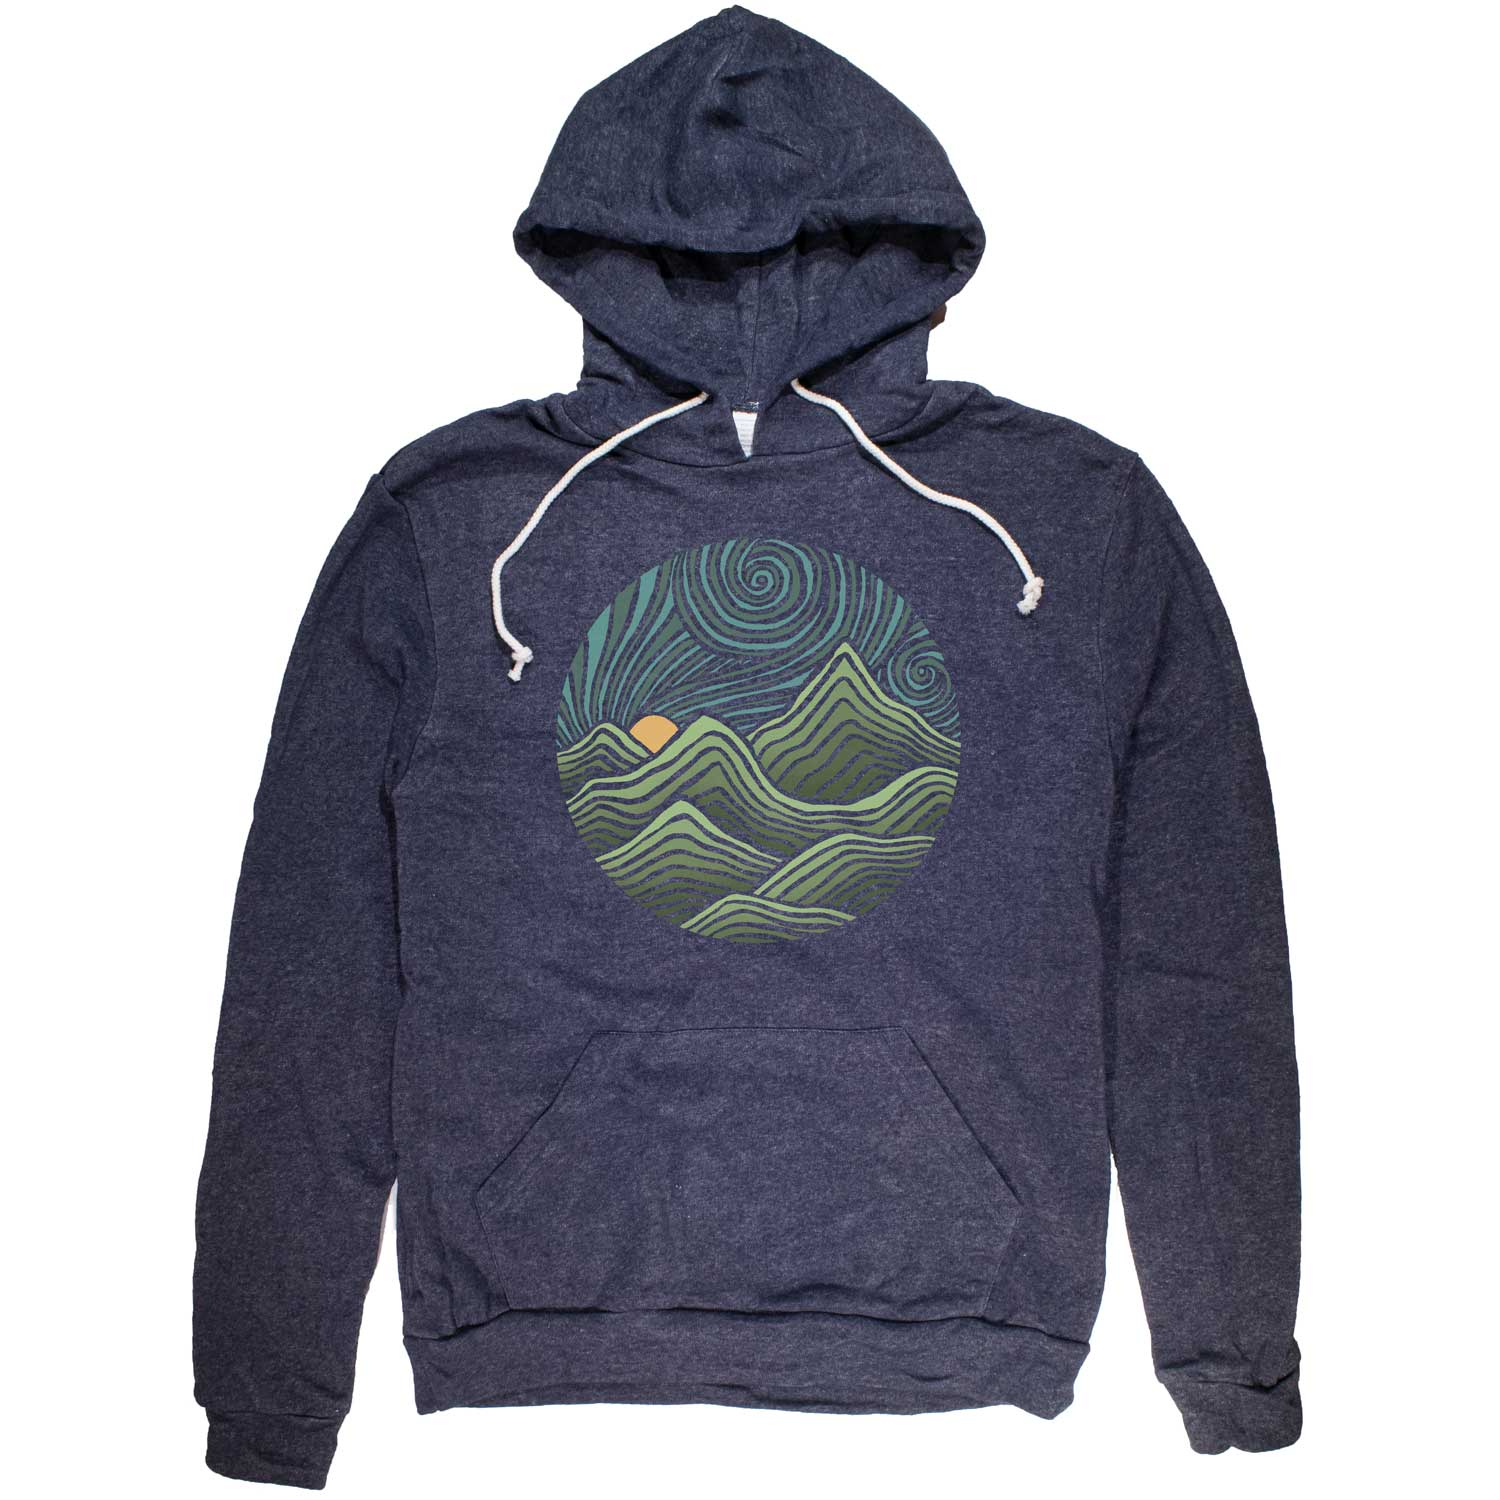 Swirly Mountains Vintage Pullover Hoodie | Cool Hiking Graphic | SOLID THREADS